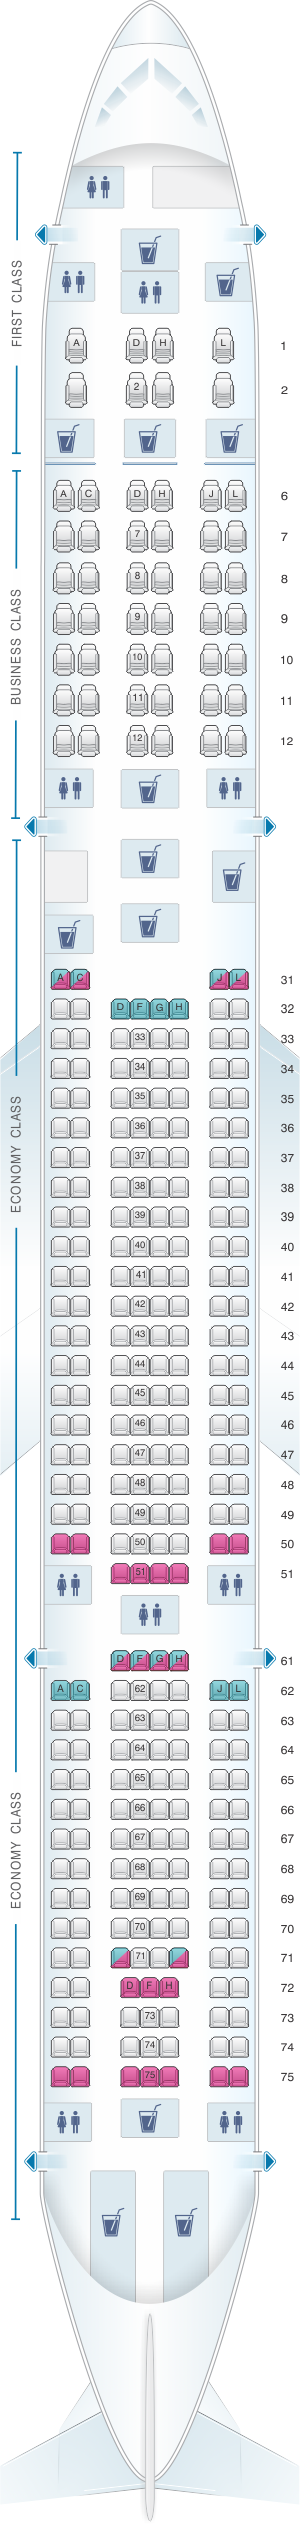 Seat map for China Eastern Airlines Airbus A340 600